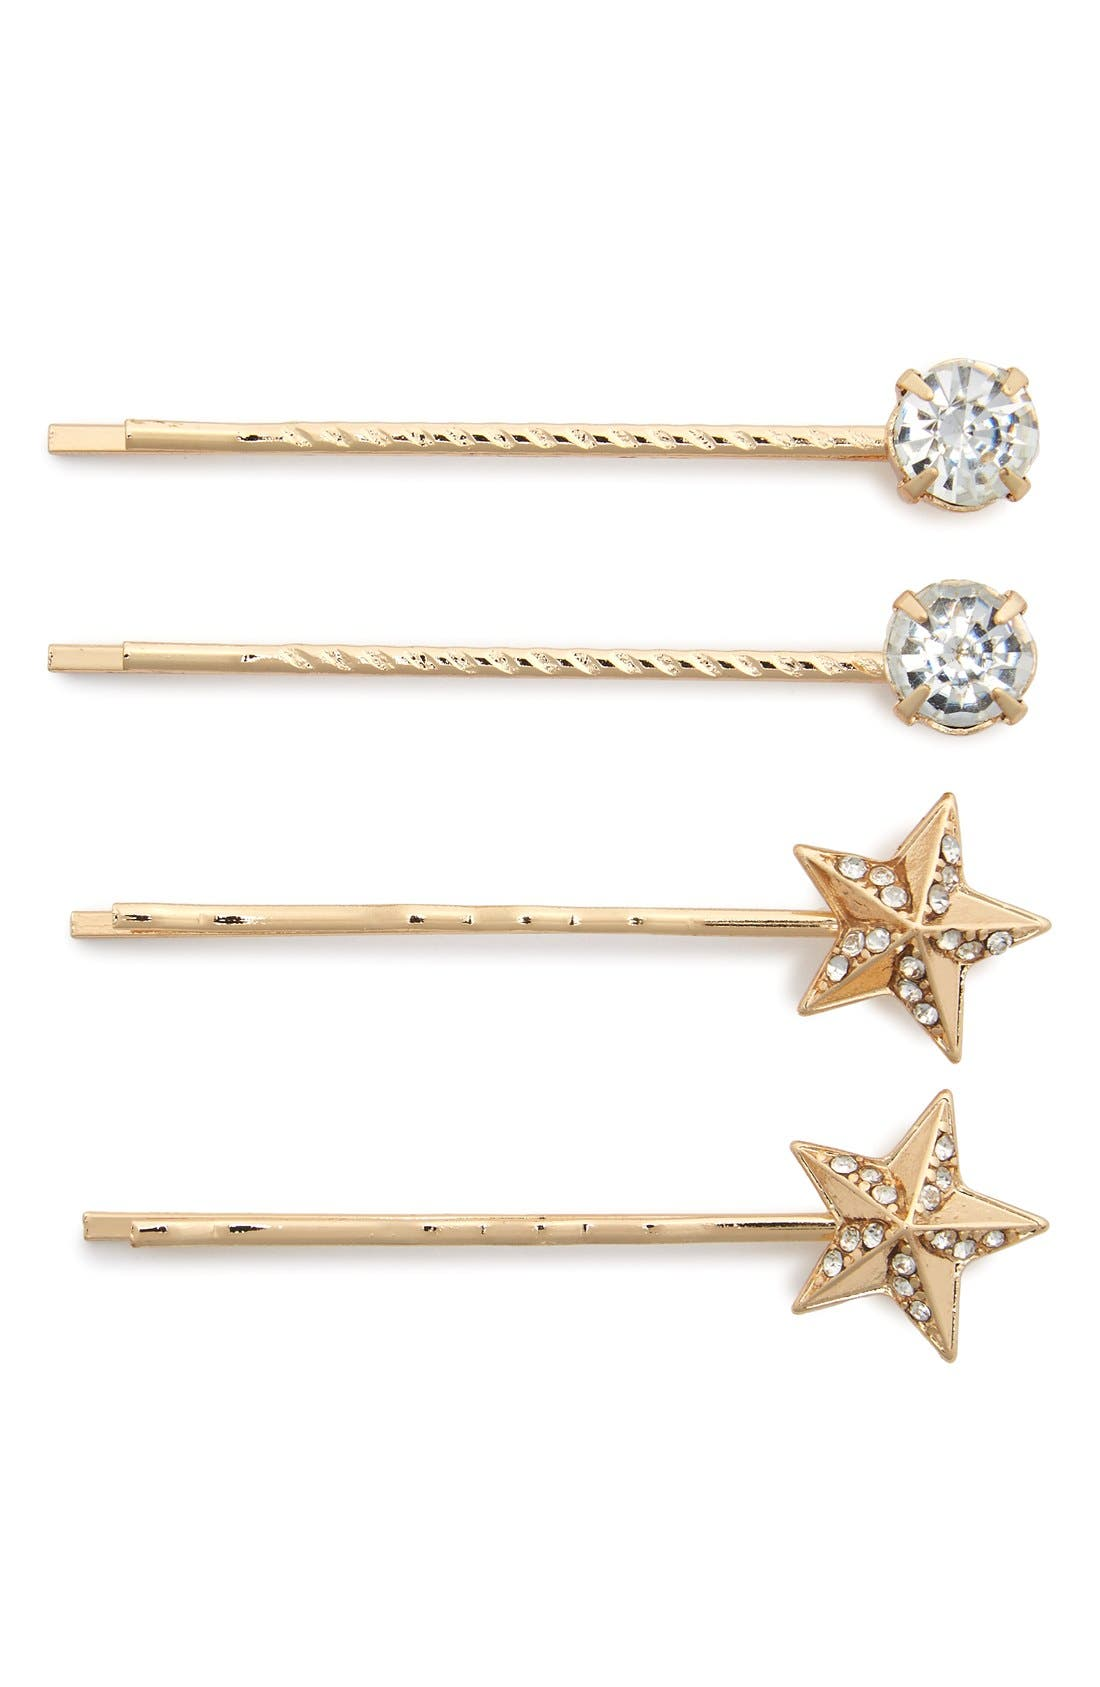 Alternate Image 1 Selected - Tasha 'Shooting Star' Bobby Pins (4-Pack)